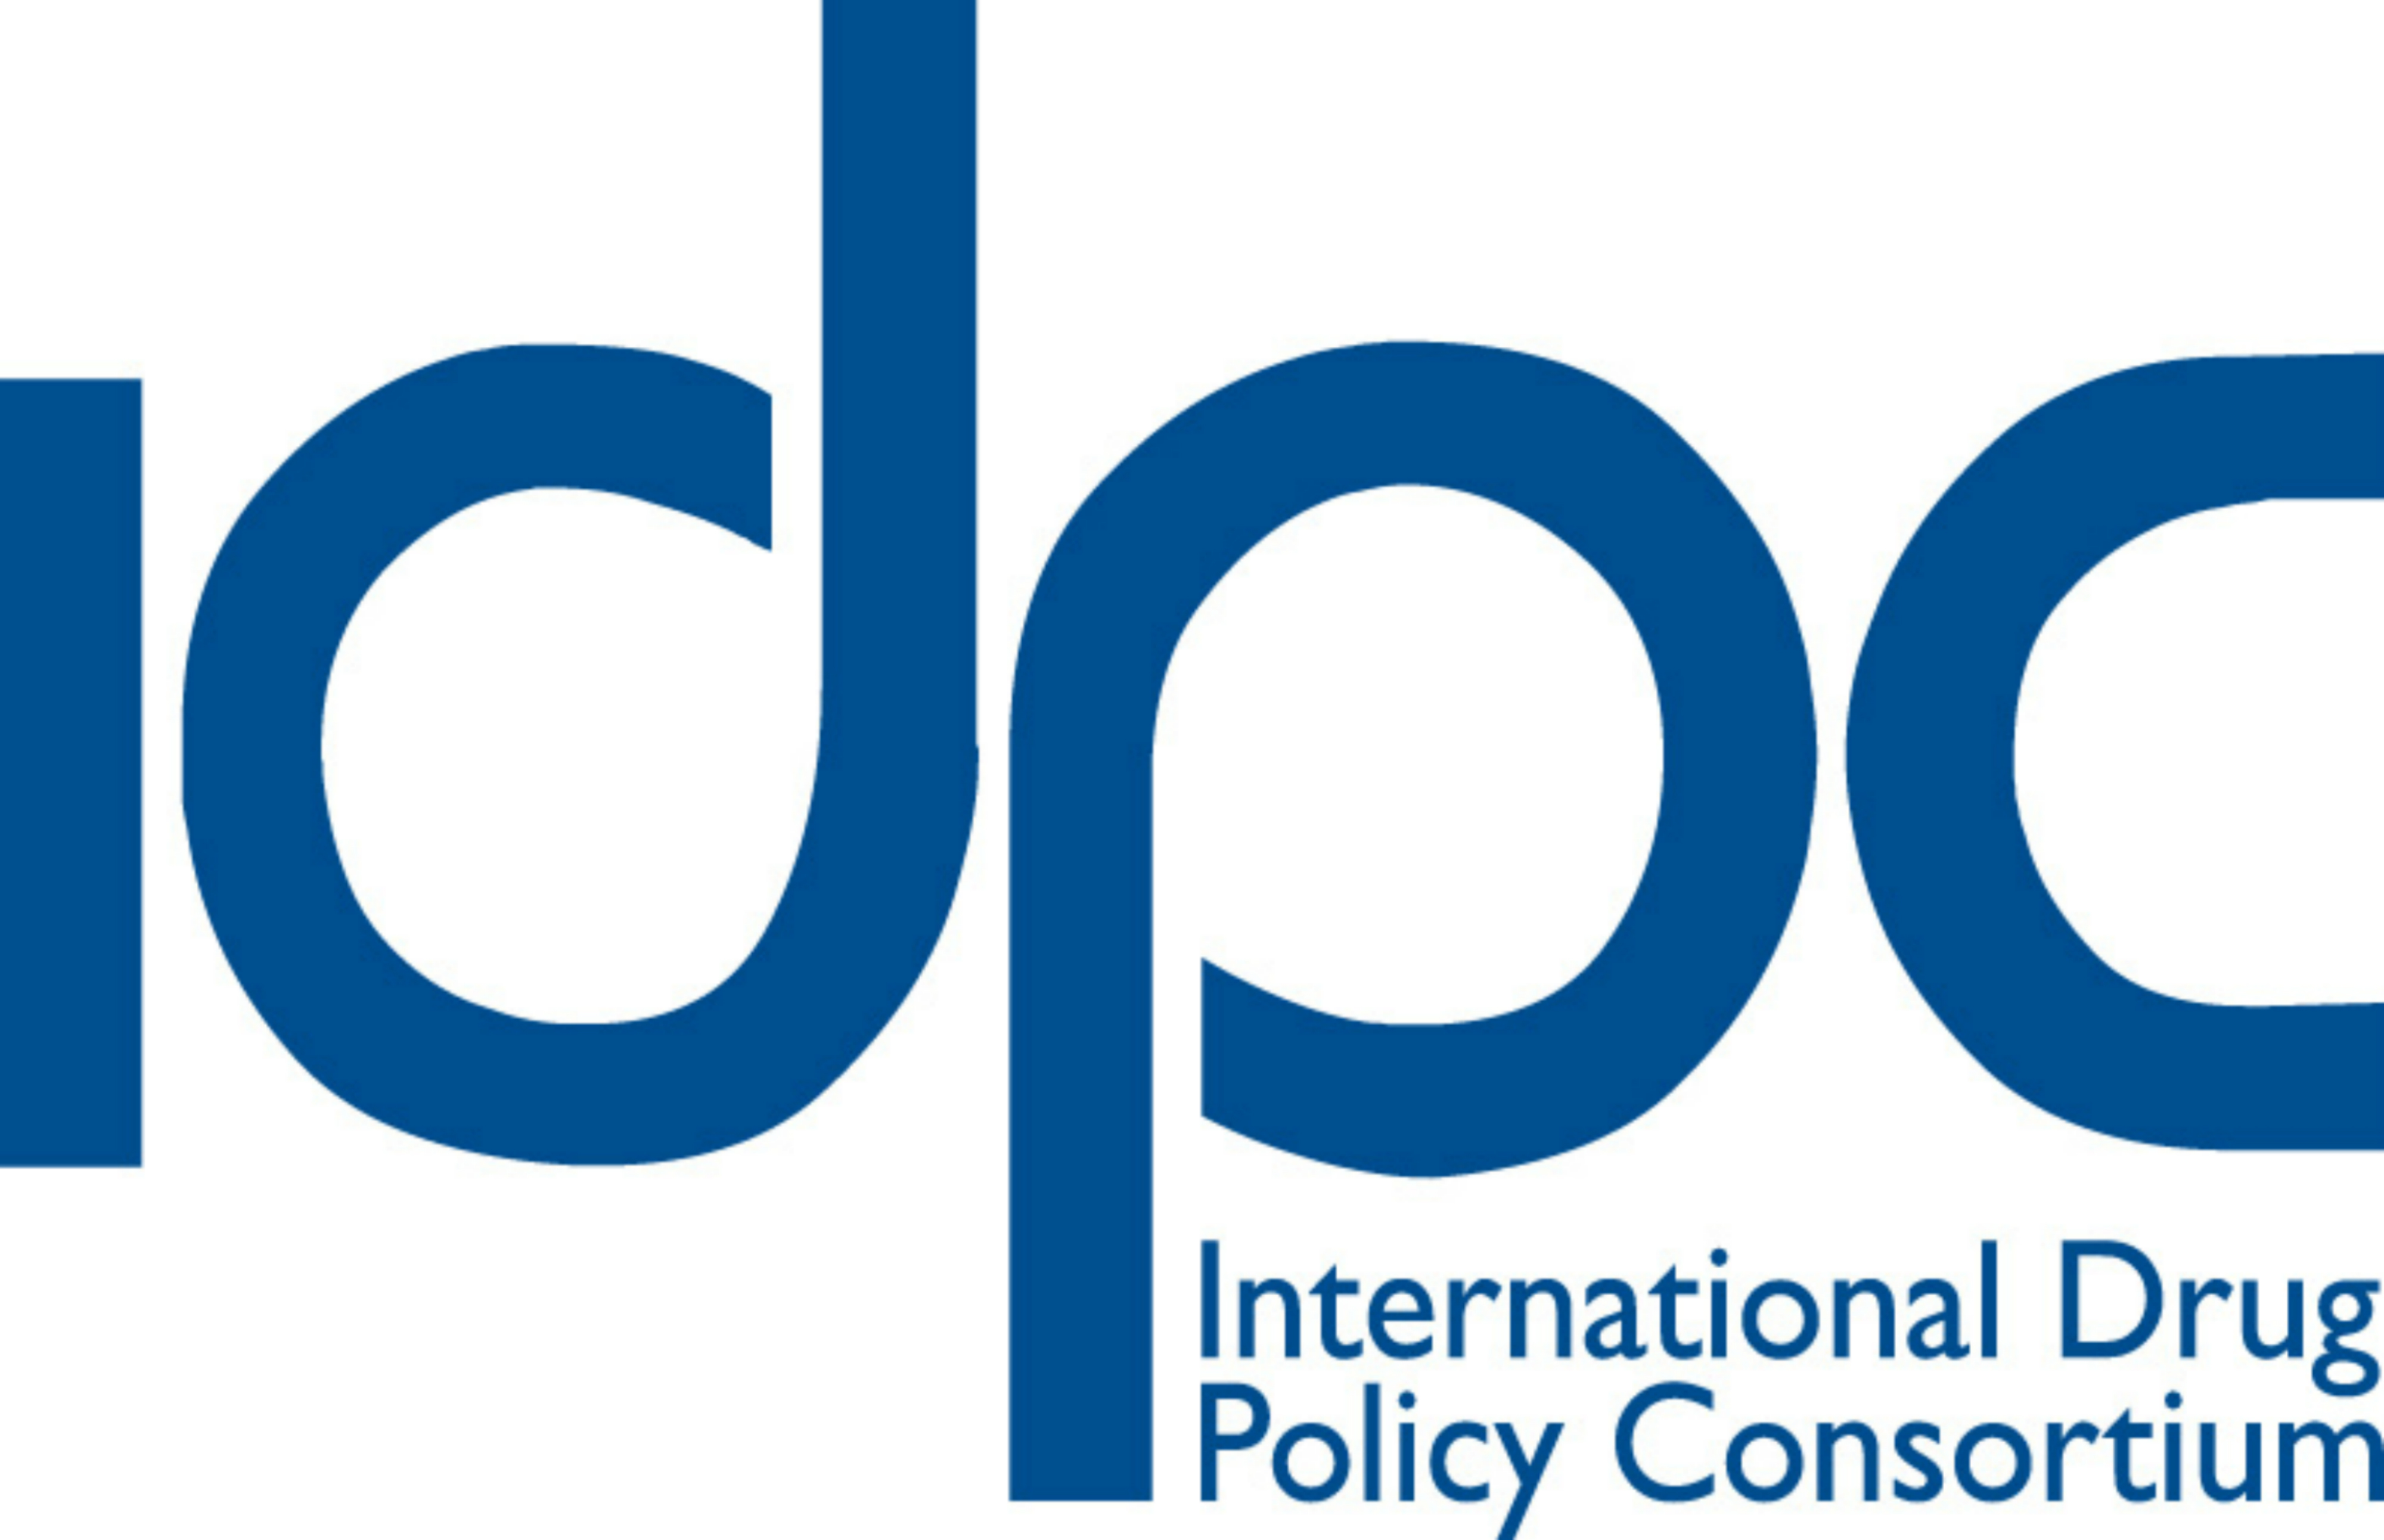 International Drug Policy Consortium (IDPC)